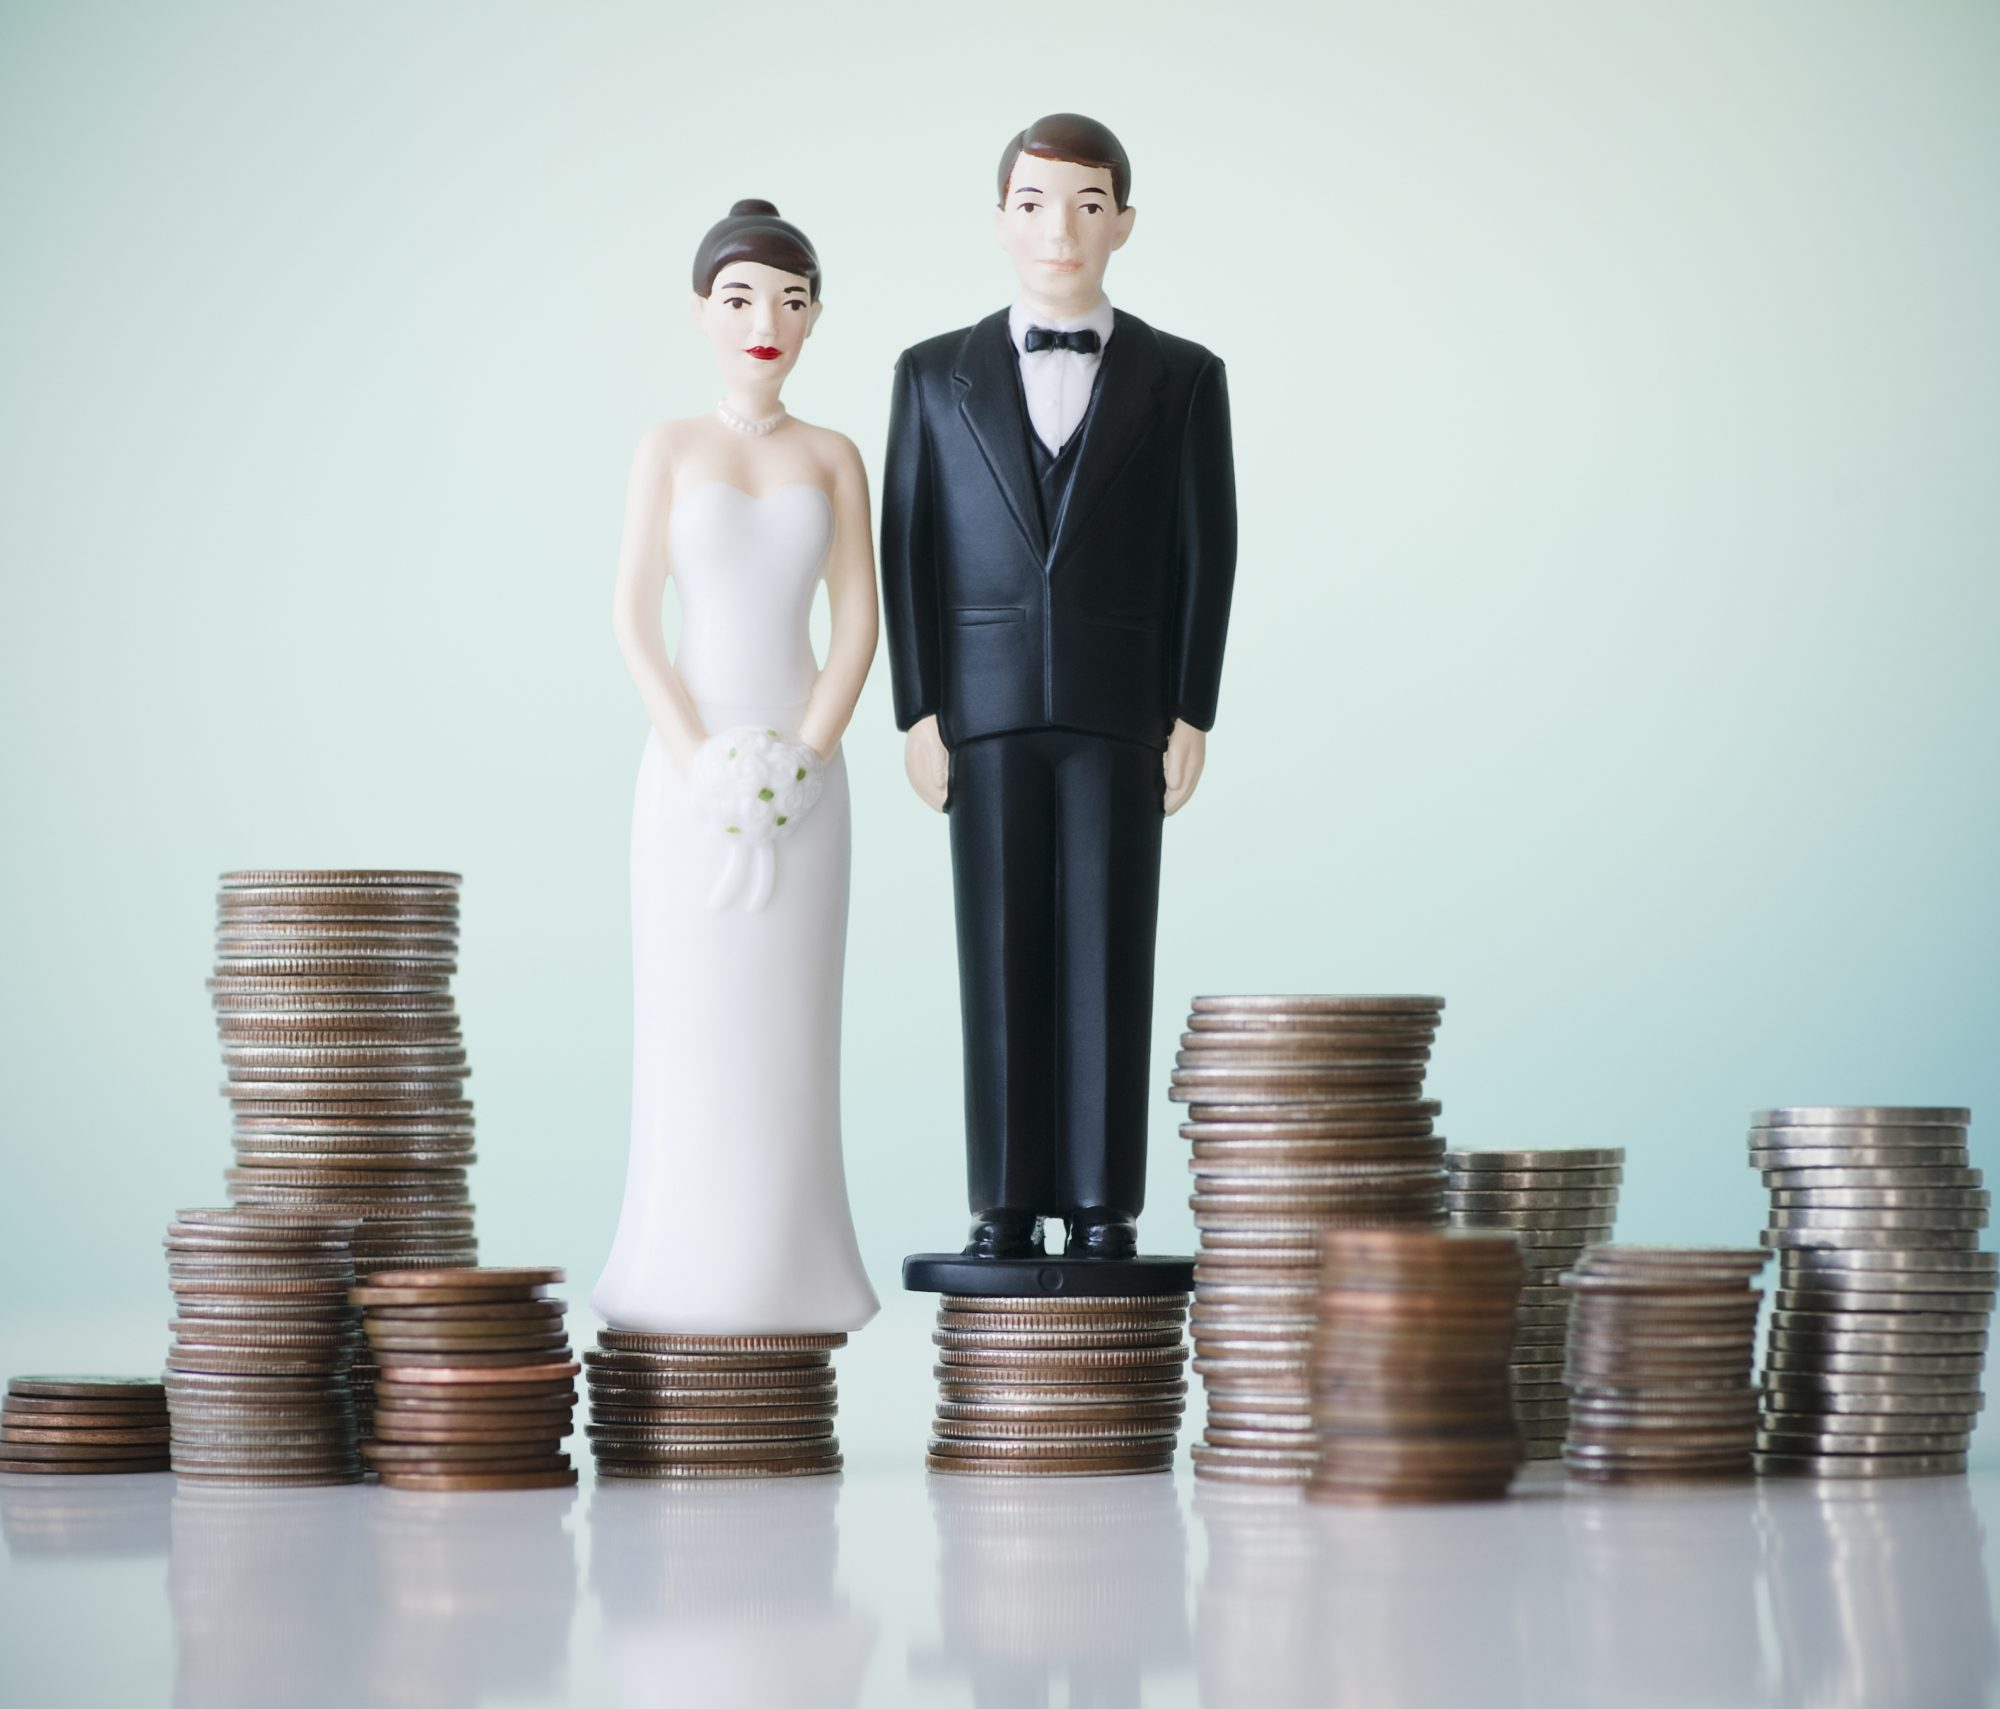 Wedding Cake Topper Standing on Money